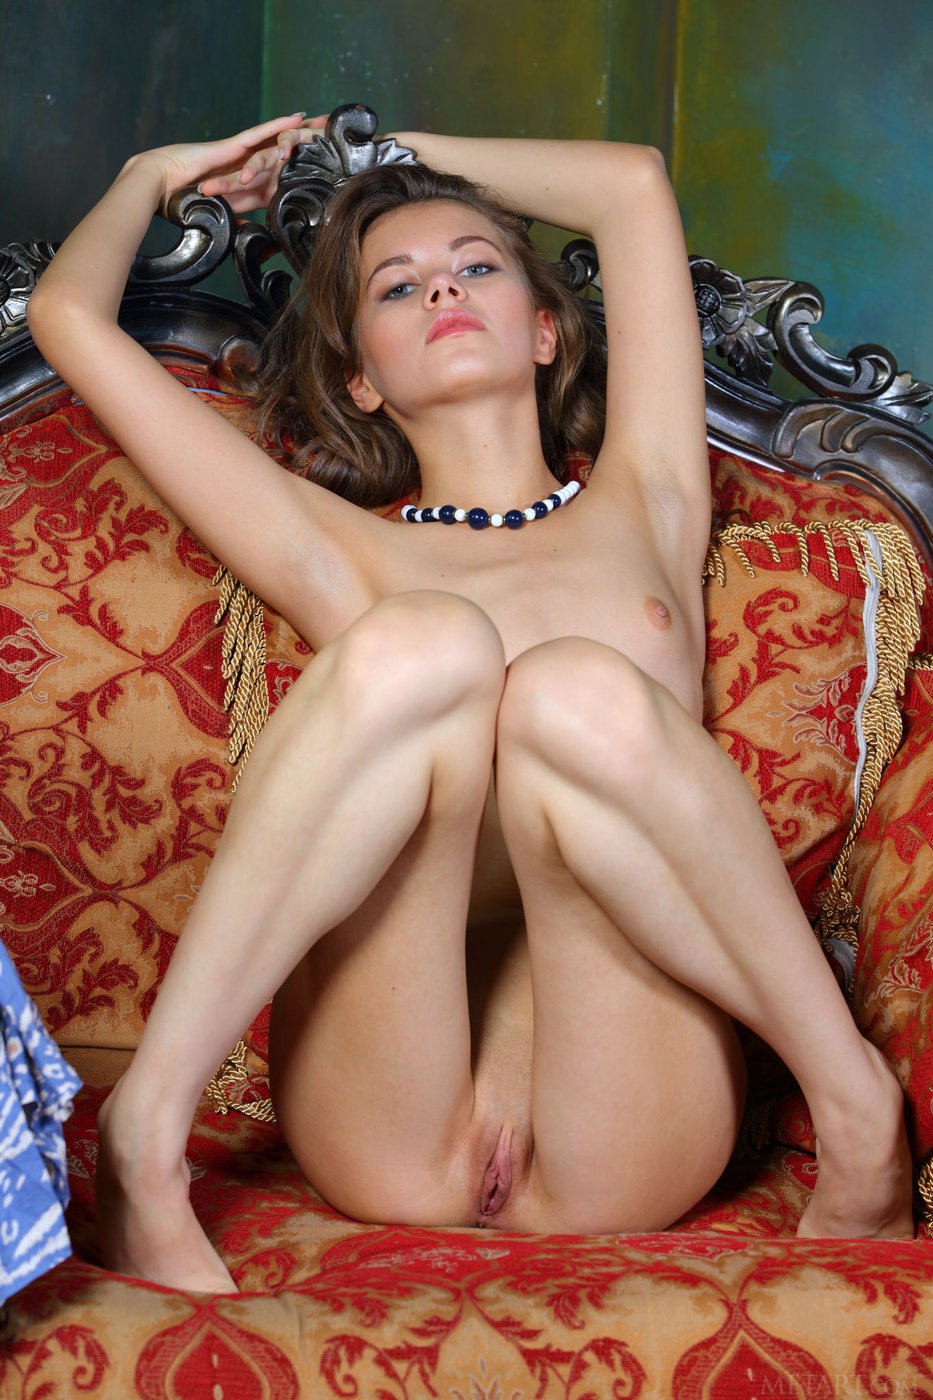 Flat-chested brunette with blue eyes posing naked on the sofa